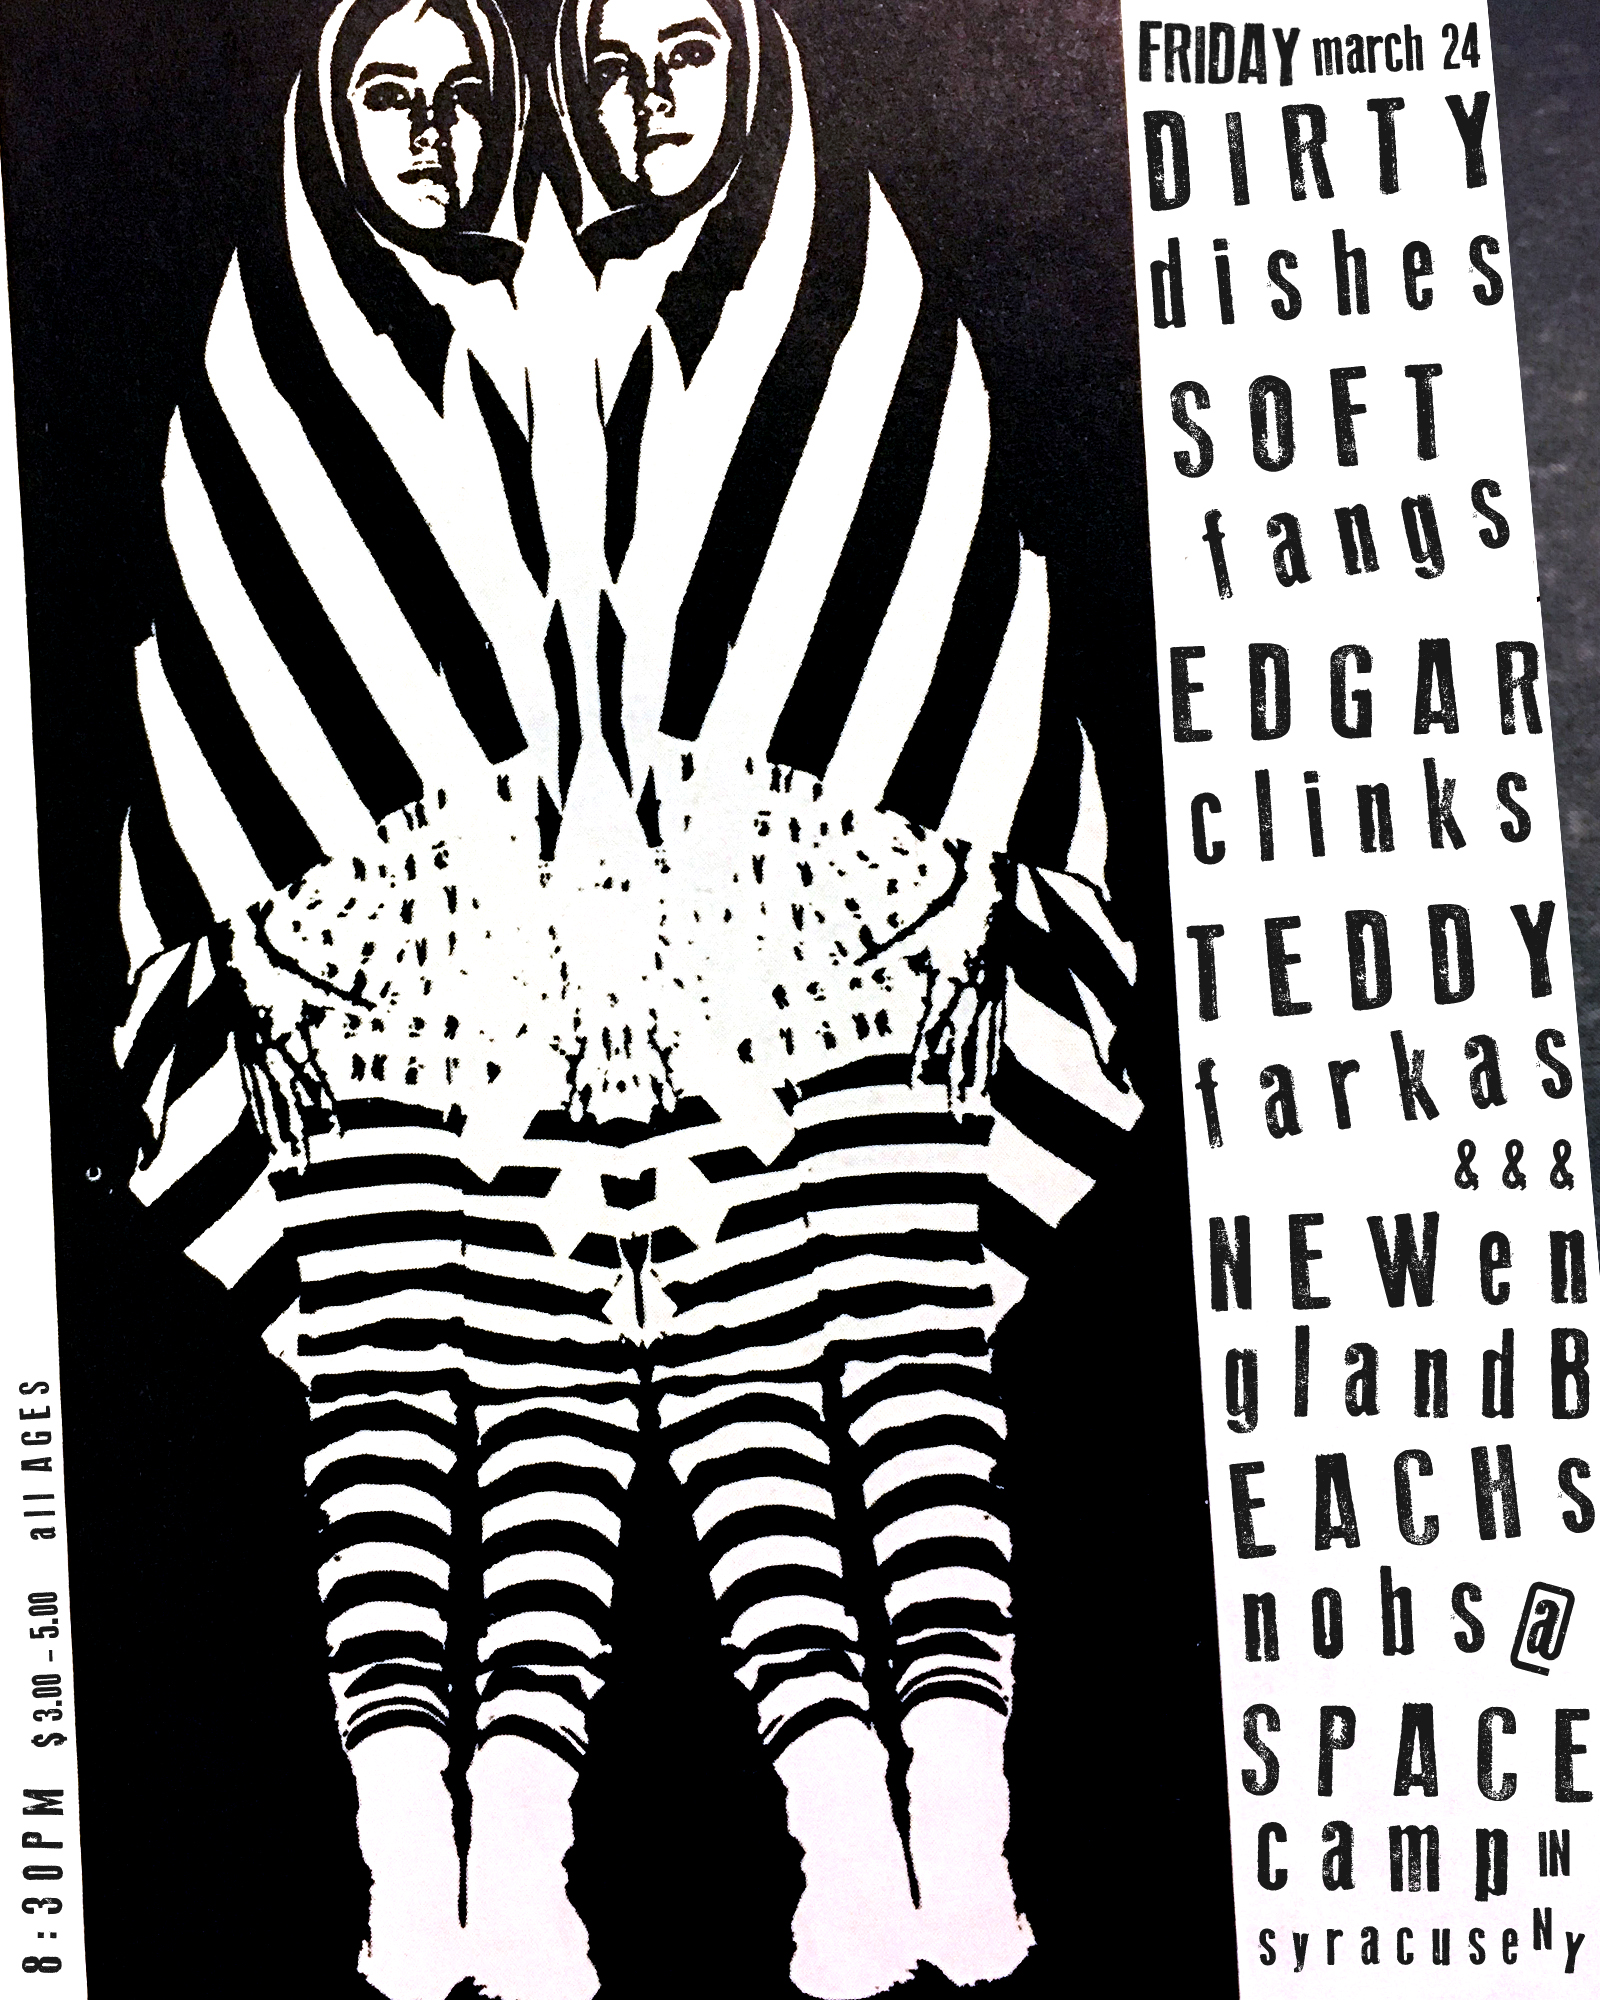 Flyer-DirtyDishes324-BW copy.jpg